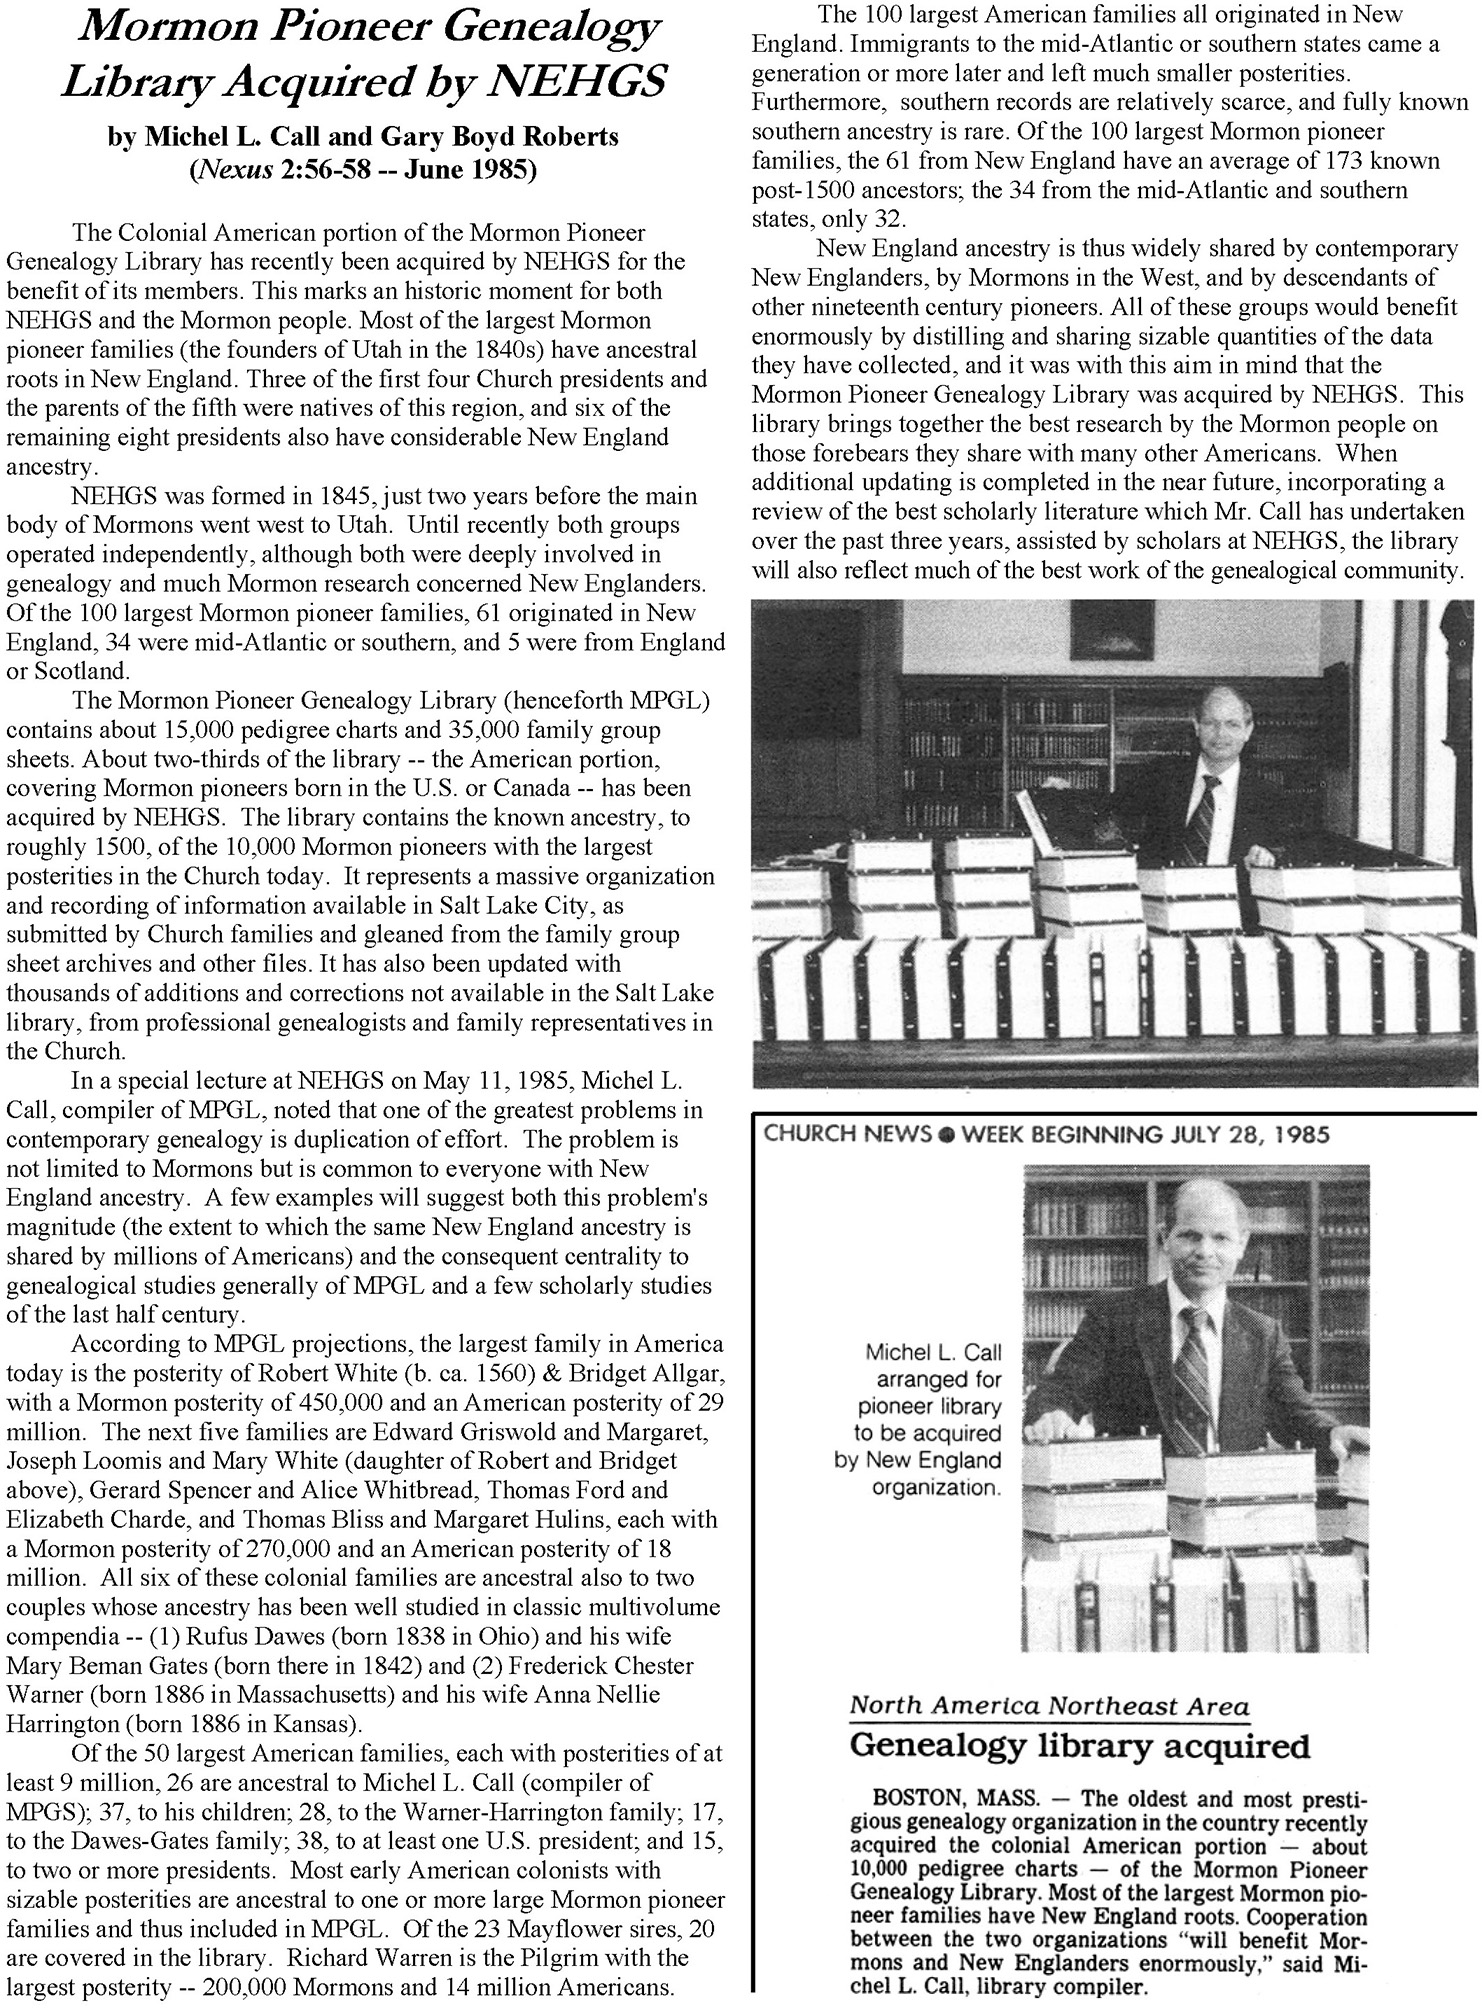 MPGL NEHGS and Newspaper Article